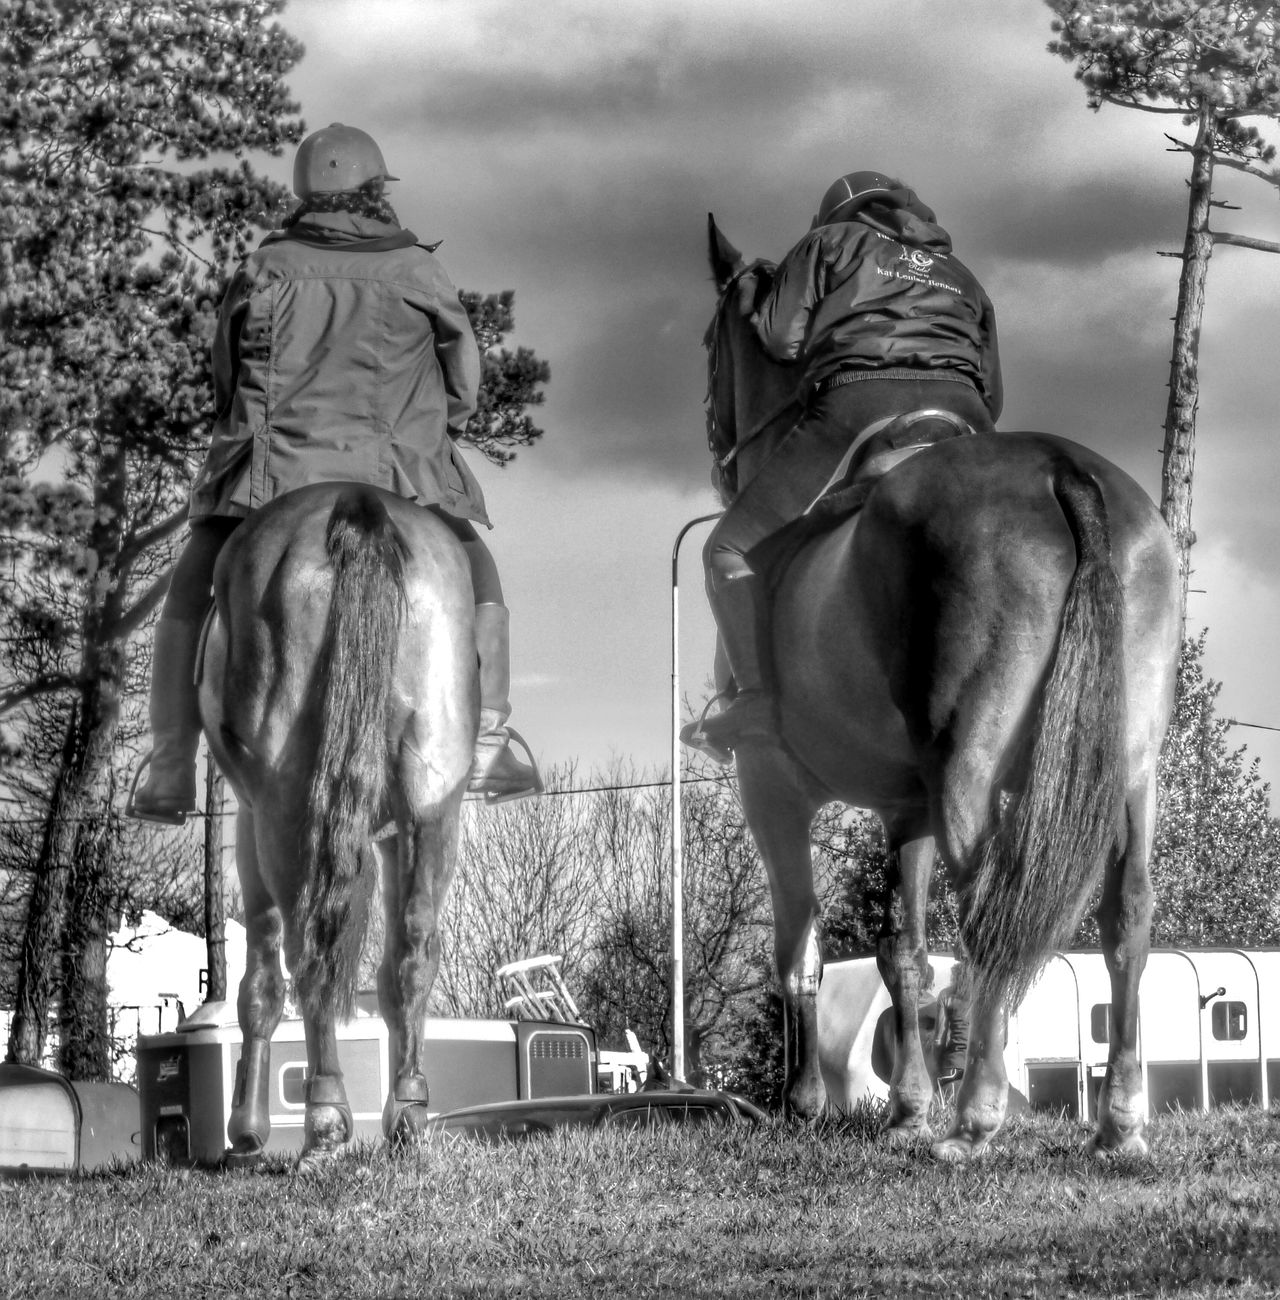 The Hunt // Animal Themes Black And White Blackandwhite Cheshire Creativity Domestic Animals EyeEm Nature Lover Field Field Grass HDR Horse Horses Hunt Ladies Riding Sky Standing Standing Stock Image Stock Photo Taking Photos Trotting Two Animals Women